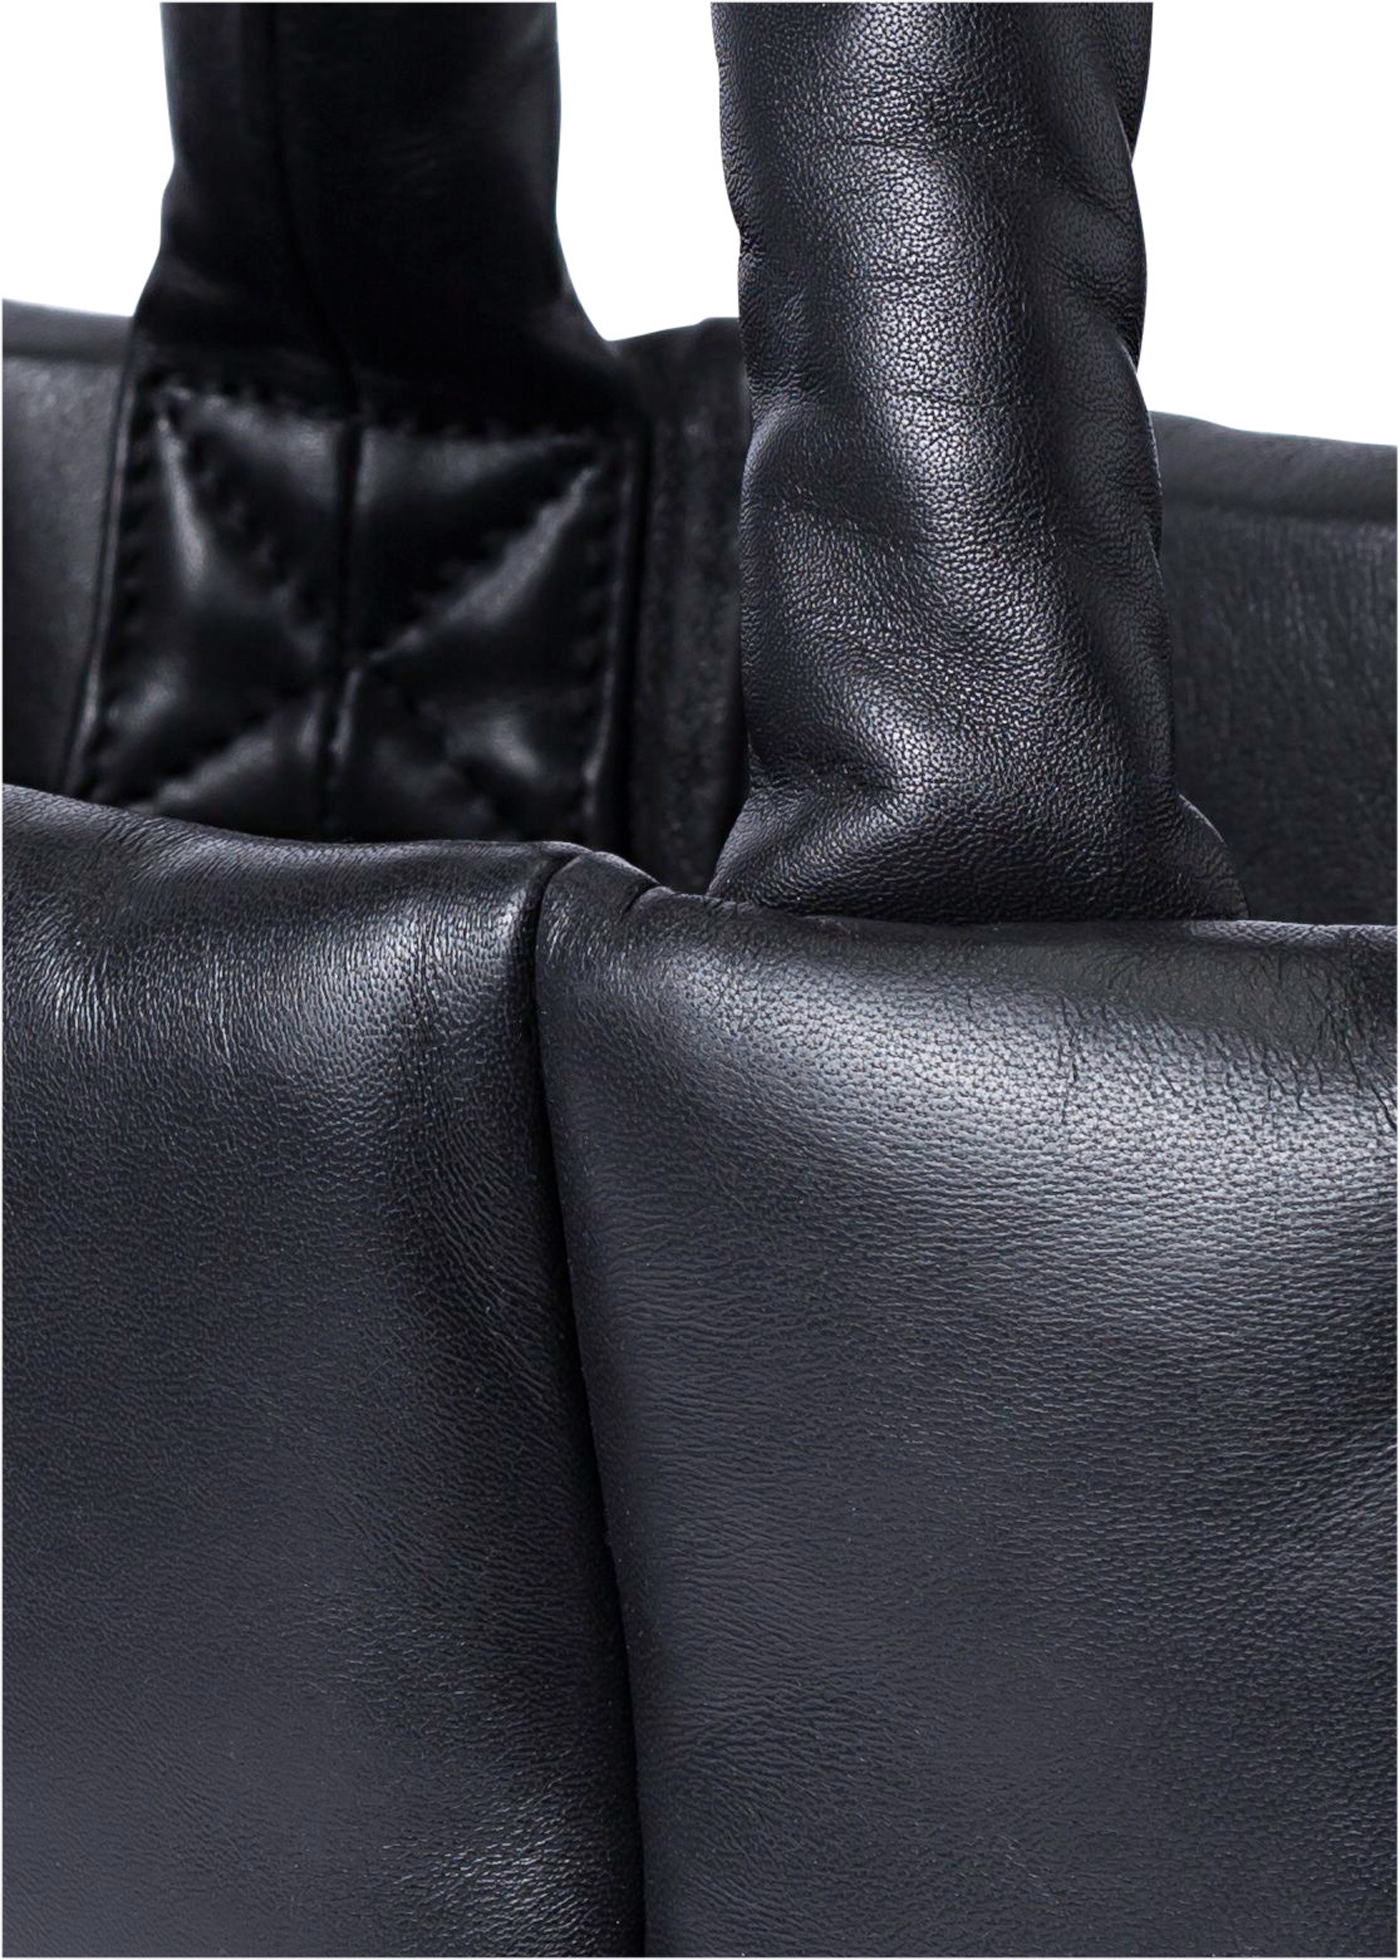 Assante Puffy Leather Bag image number 2